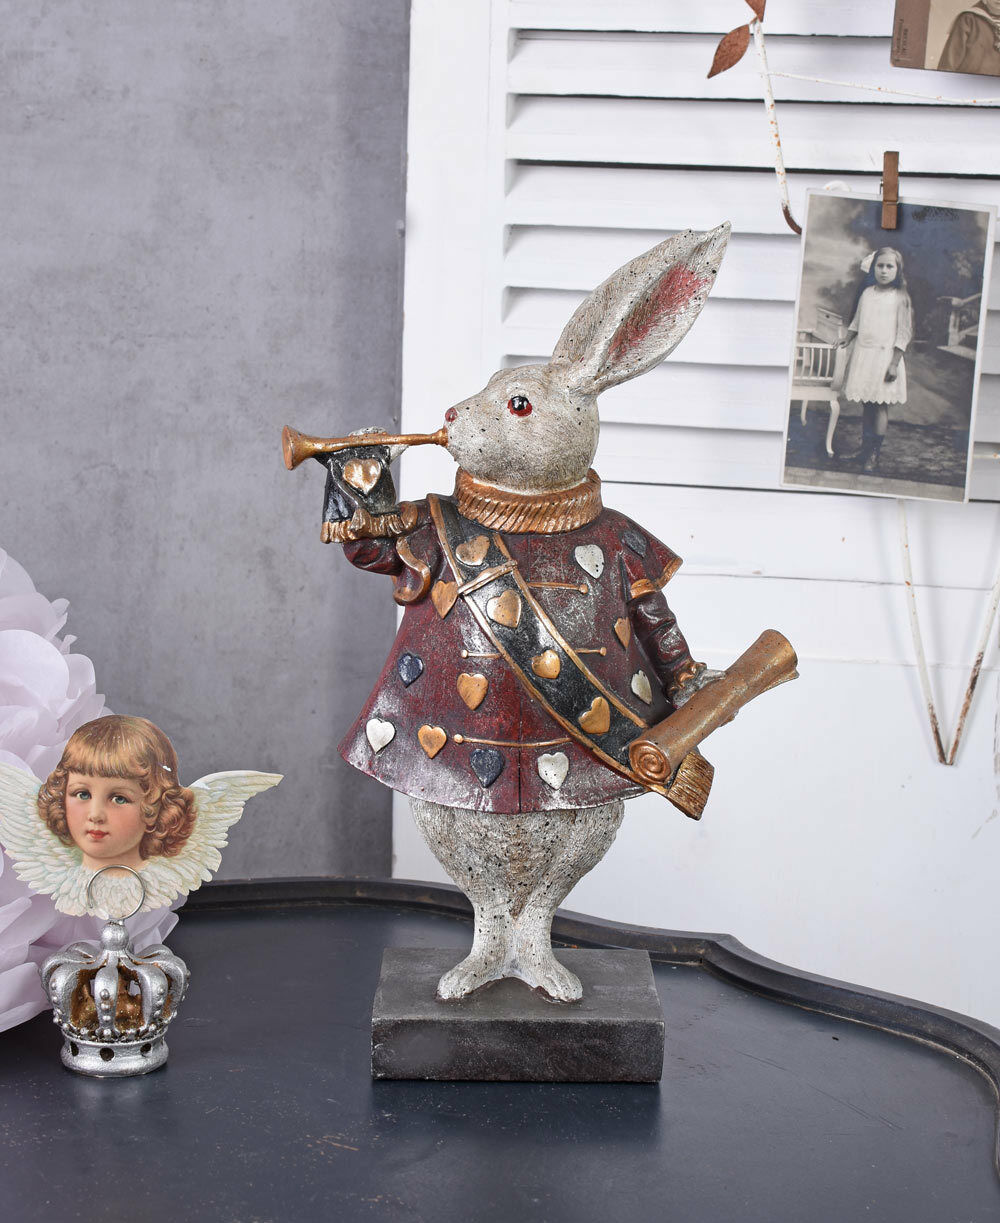 vintage figur weisses kaninchen alice im wunderland skulptur m rchenfigur hase eur 29 99. Black Bedroom Furniture Sets. Home Design Ideas